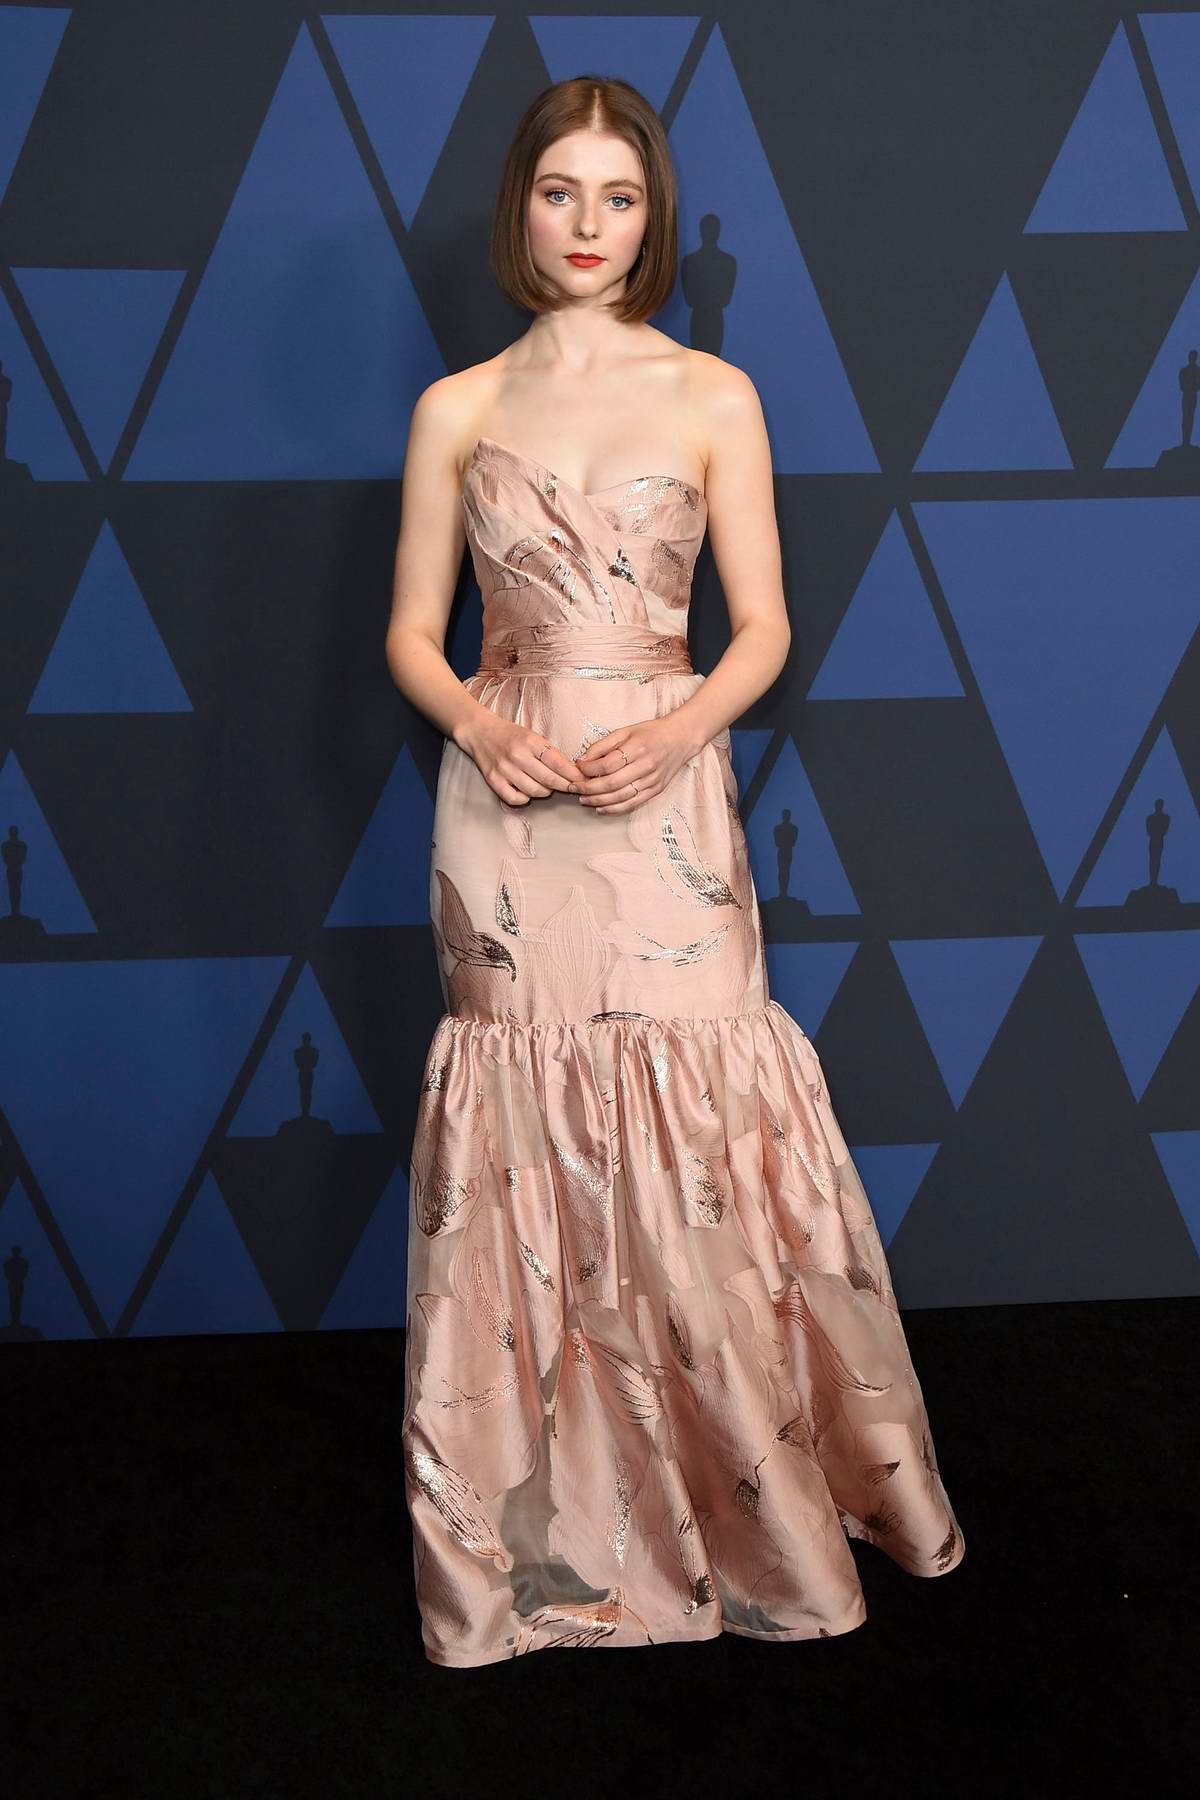 Thomasin McKenzie attends the Academy of Motion Picture Arts and Sciences' 11th Annual Governors Awards in Hollywood, California